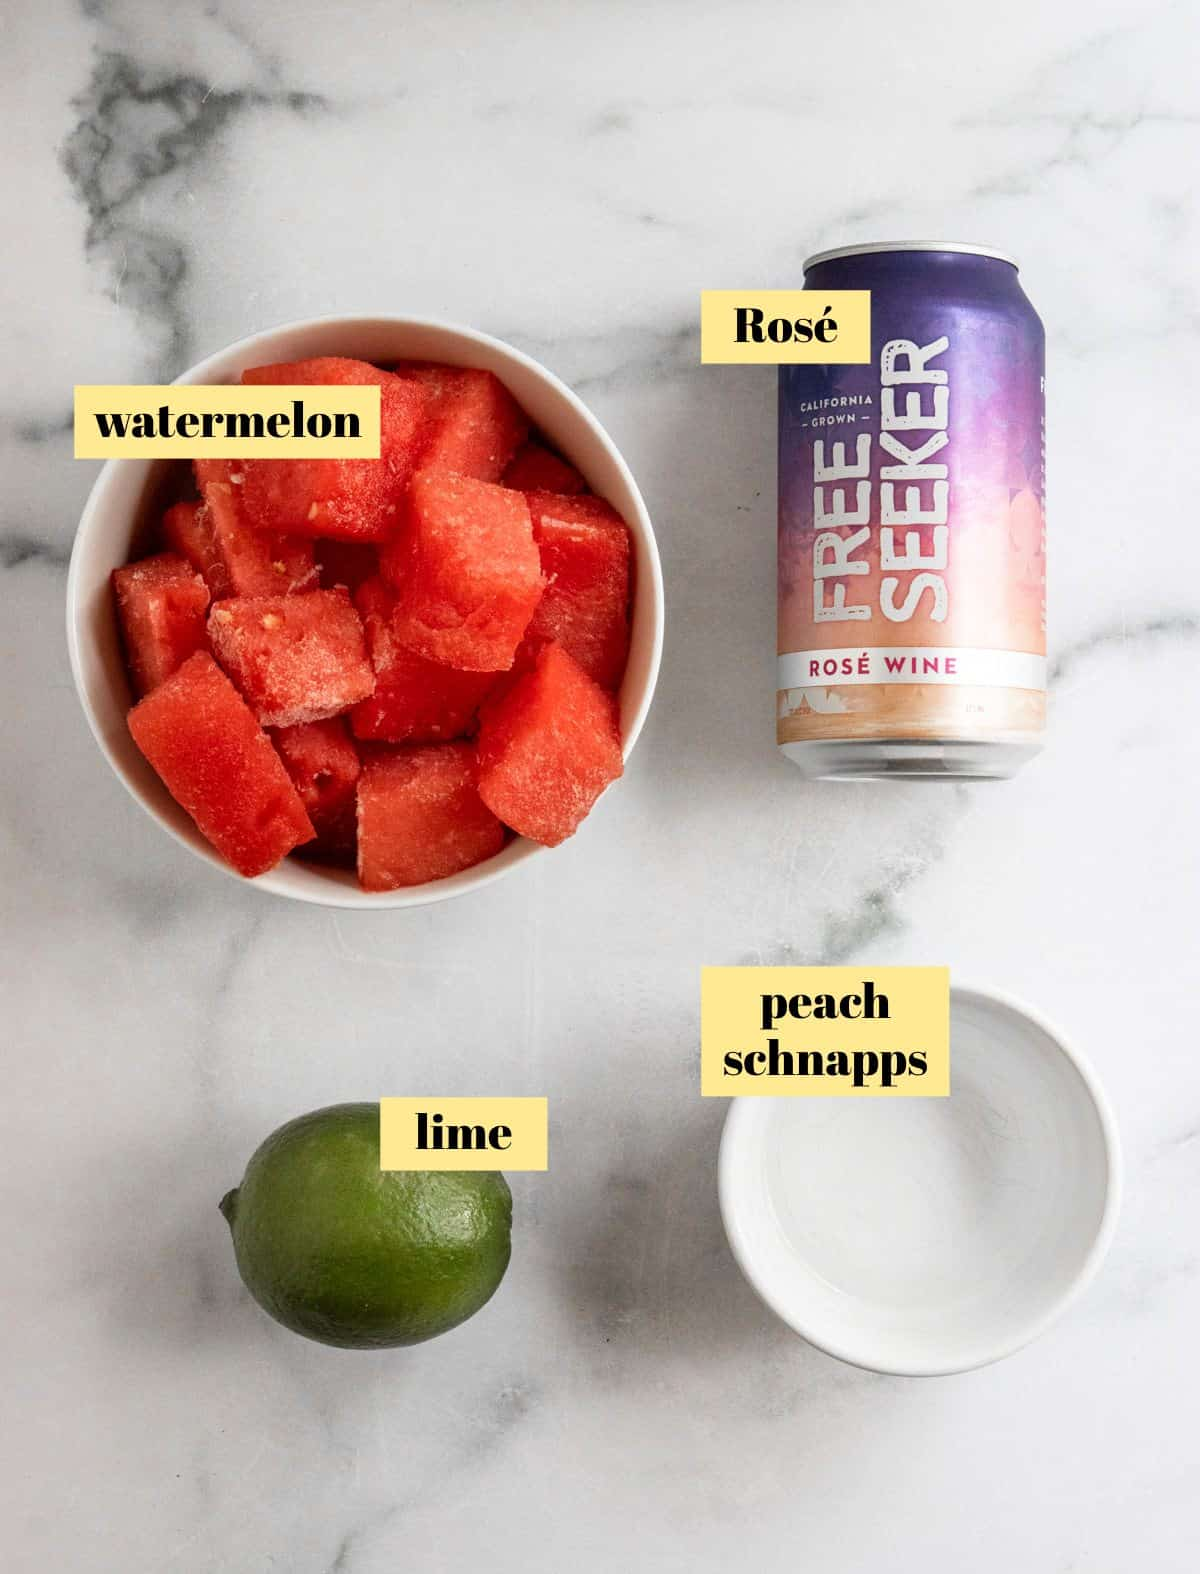 Rose, lime, watermelon and peach schnapps.